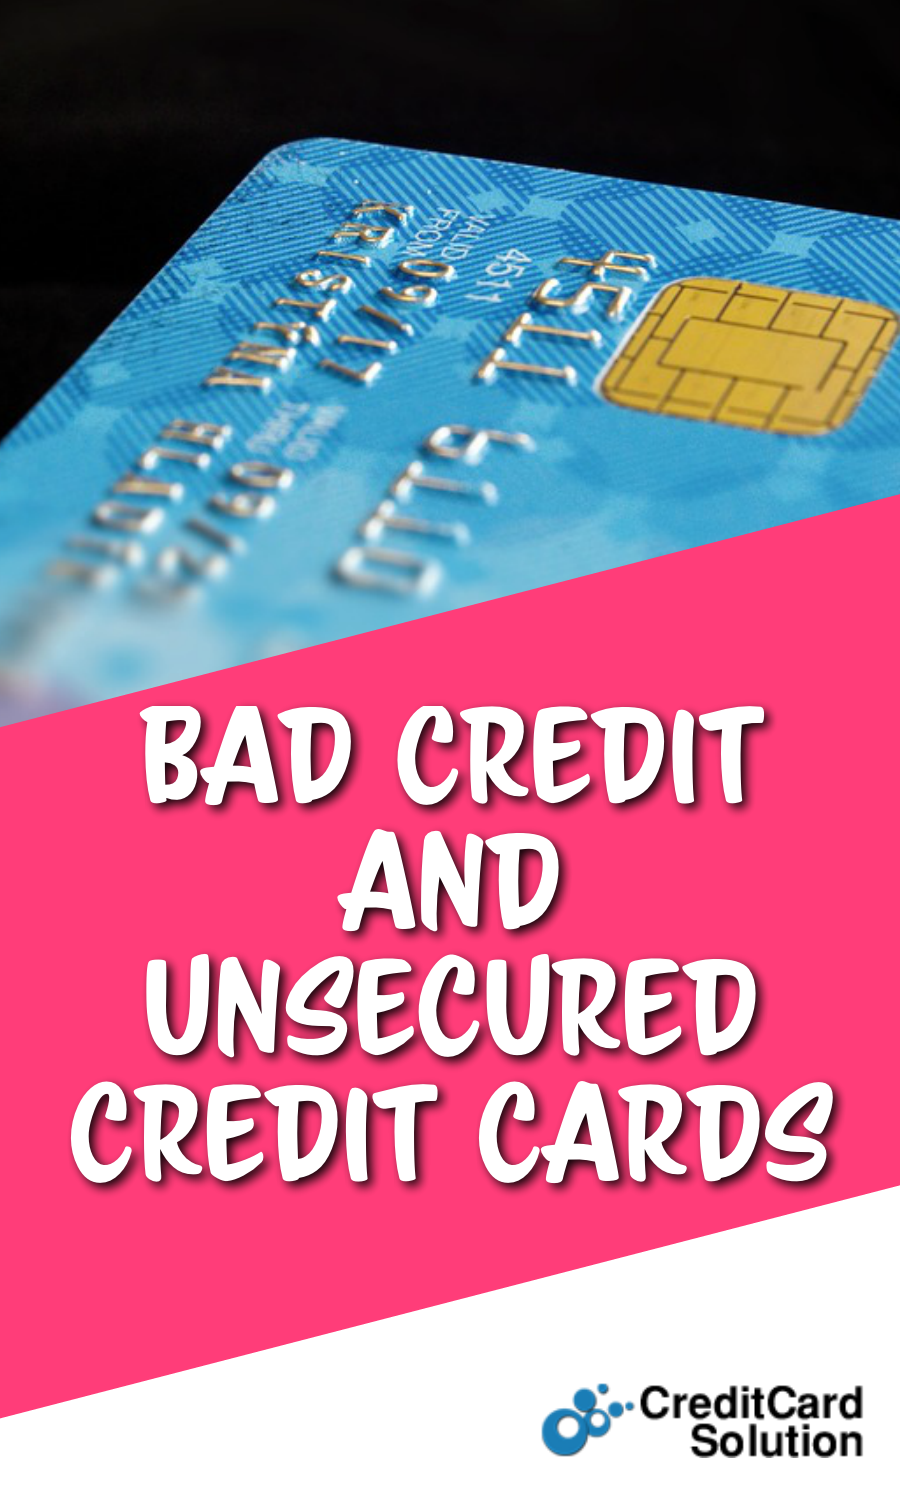 Bad Credit and Unsecured Credit Cards | Bad credit credit cards, Unsecured credit cards, Rewards ...